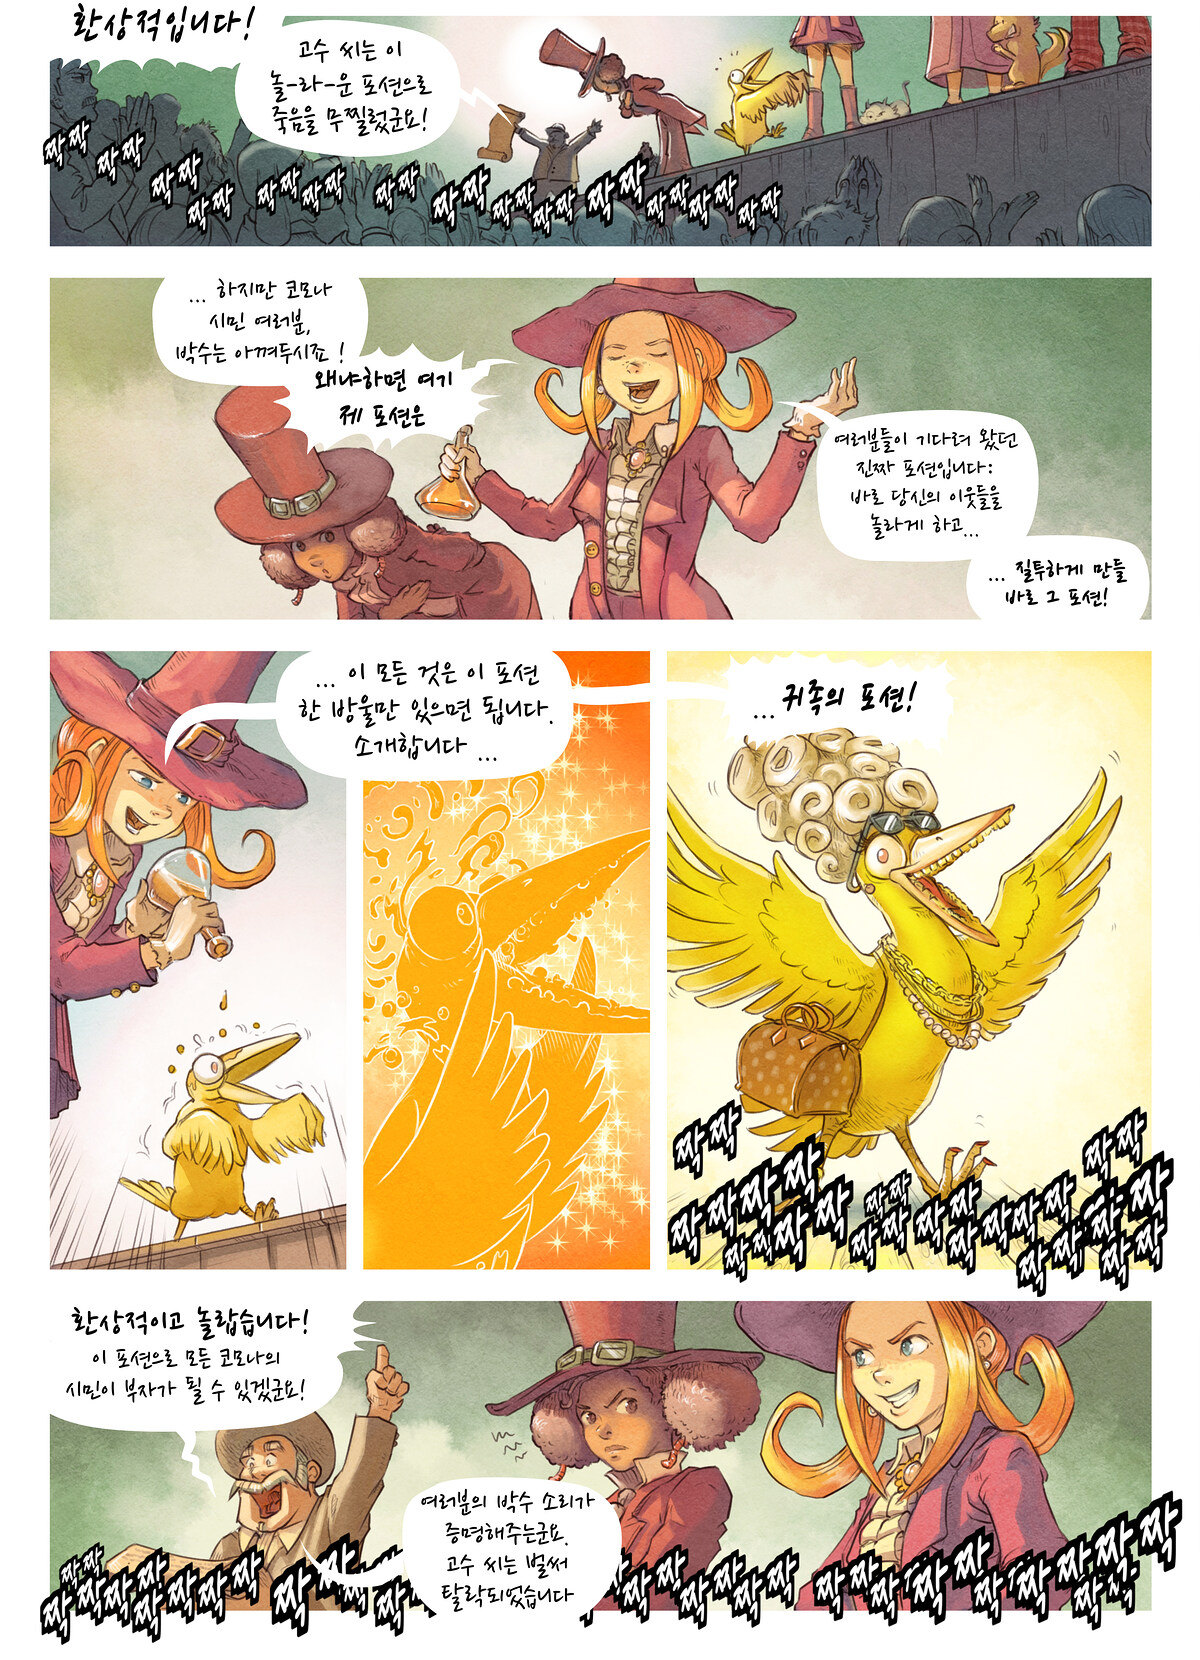 A webcomic page of Pepper&Carrot, 에피소드 6 [kr], 페이지 5